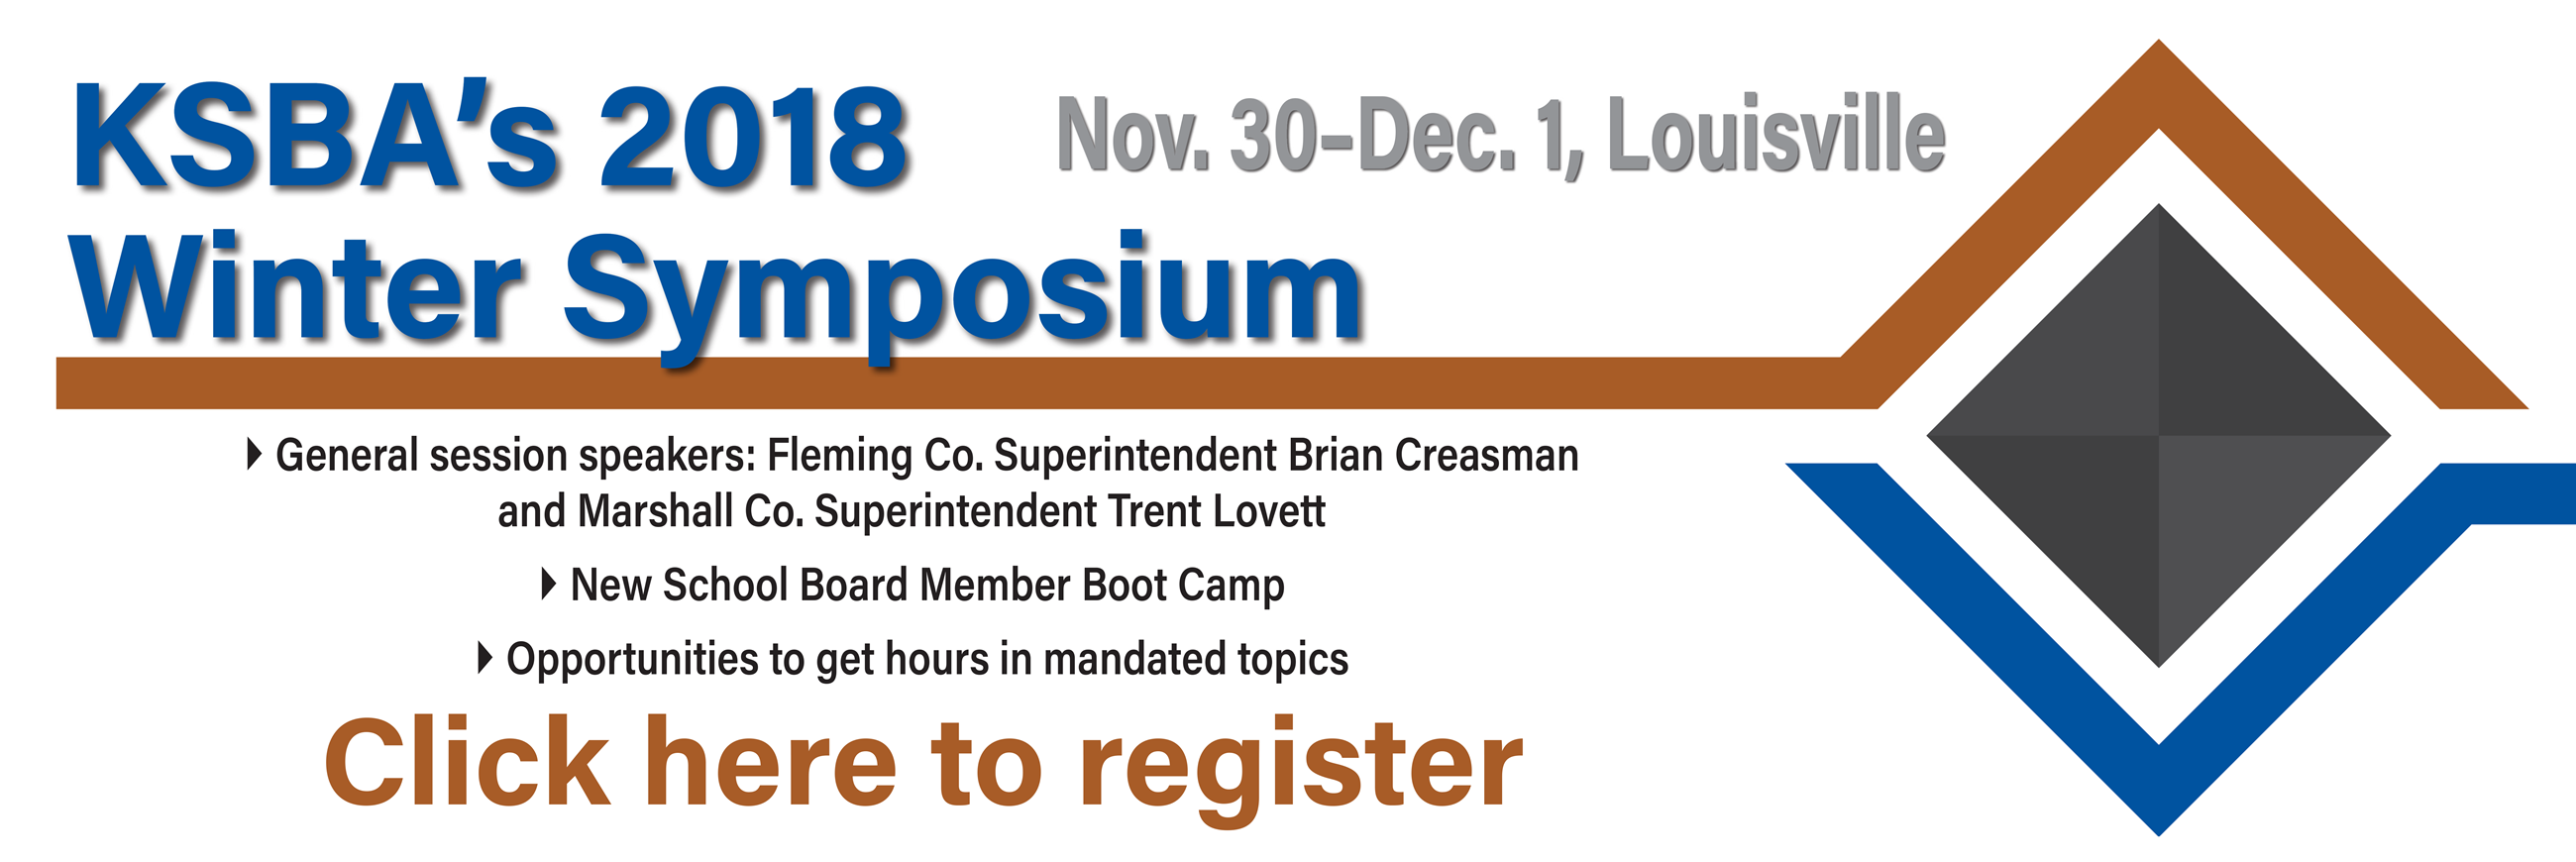 2018 Winter Symposium